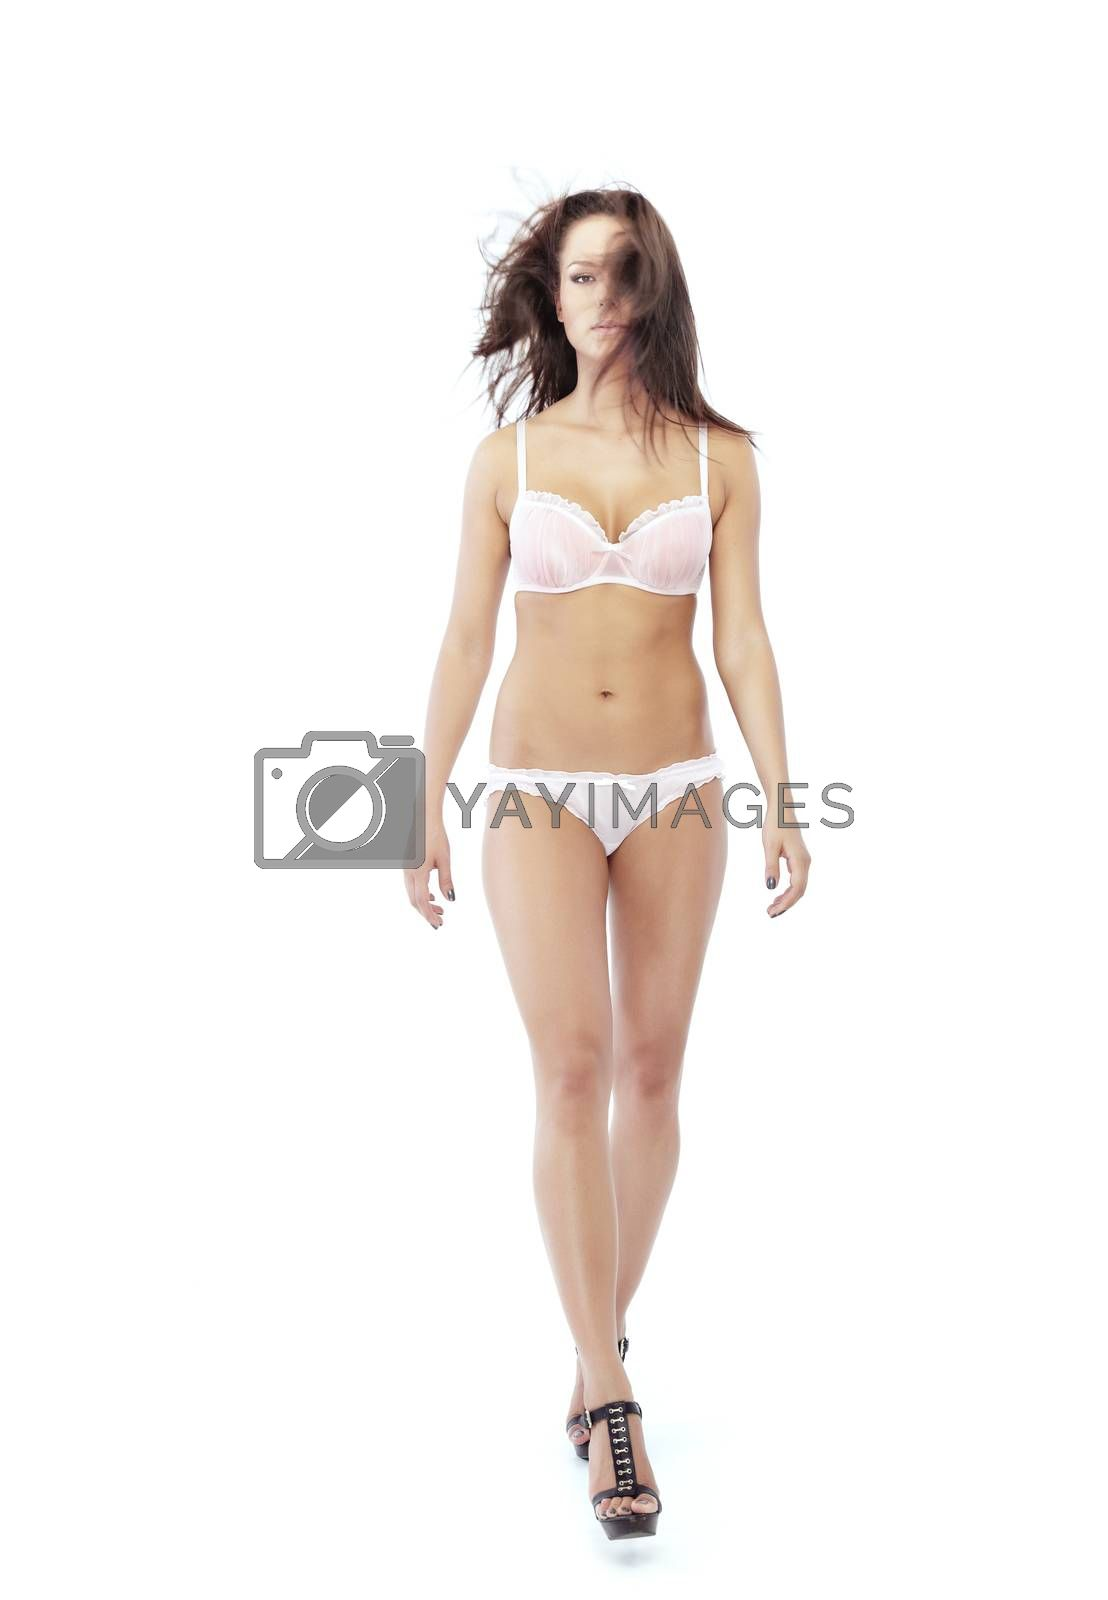 Stylish model in lingerie going on a white background